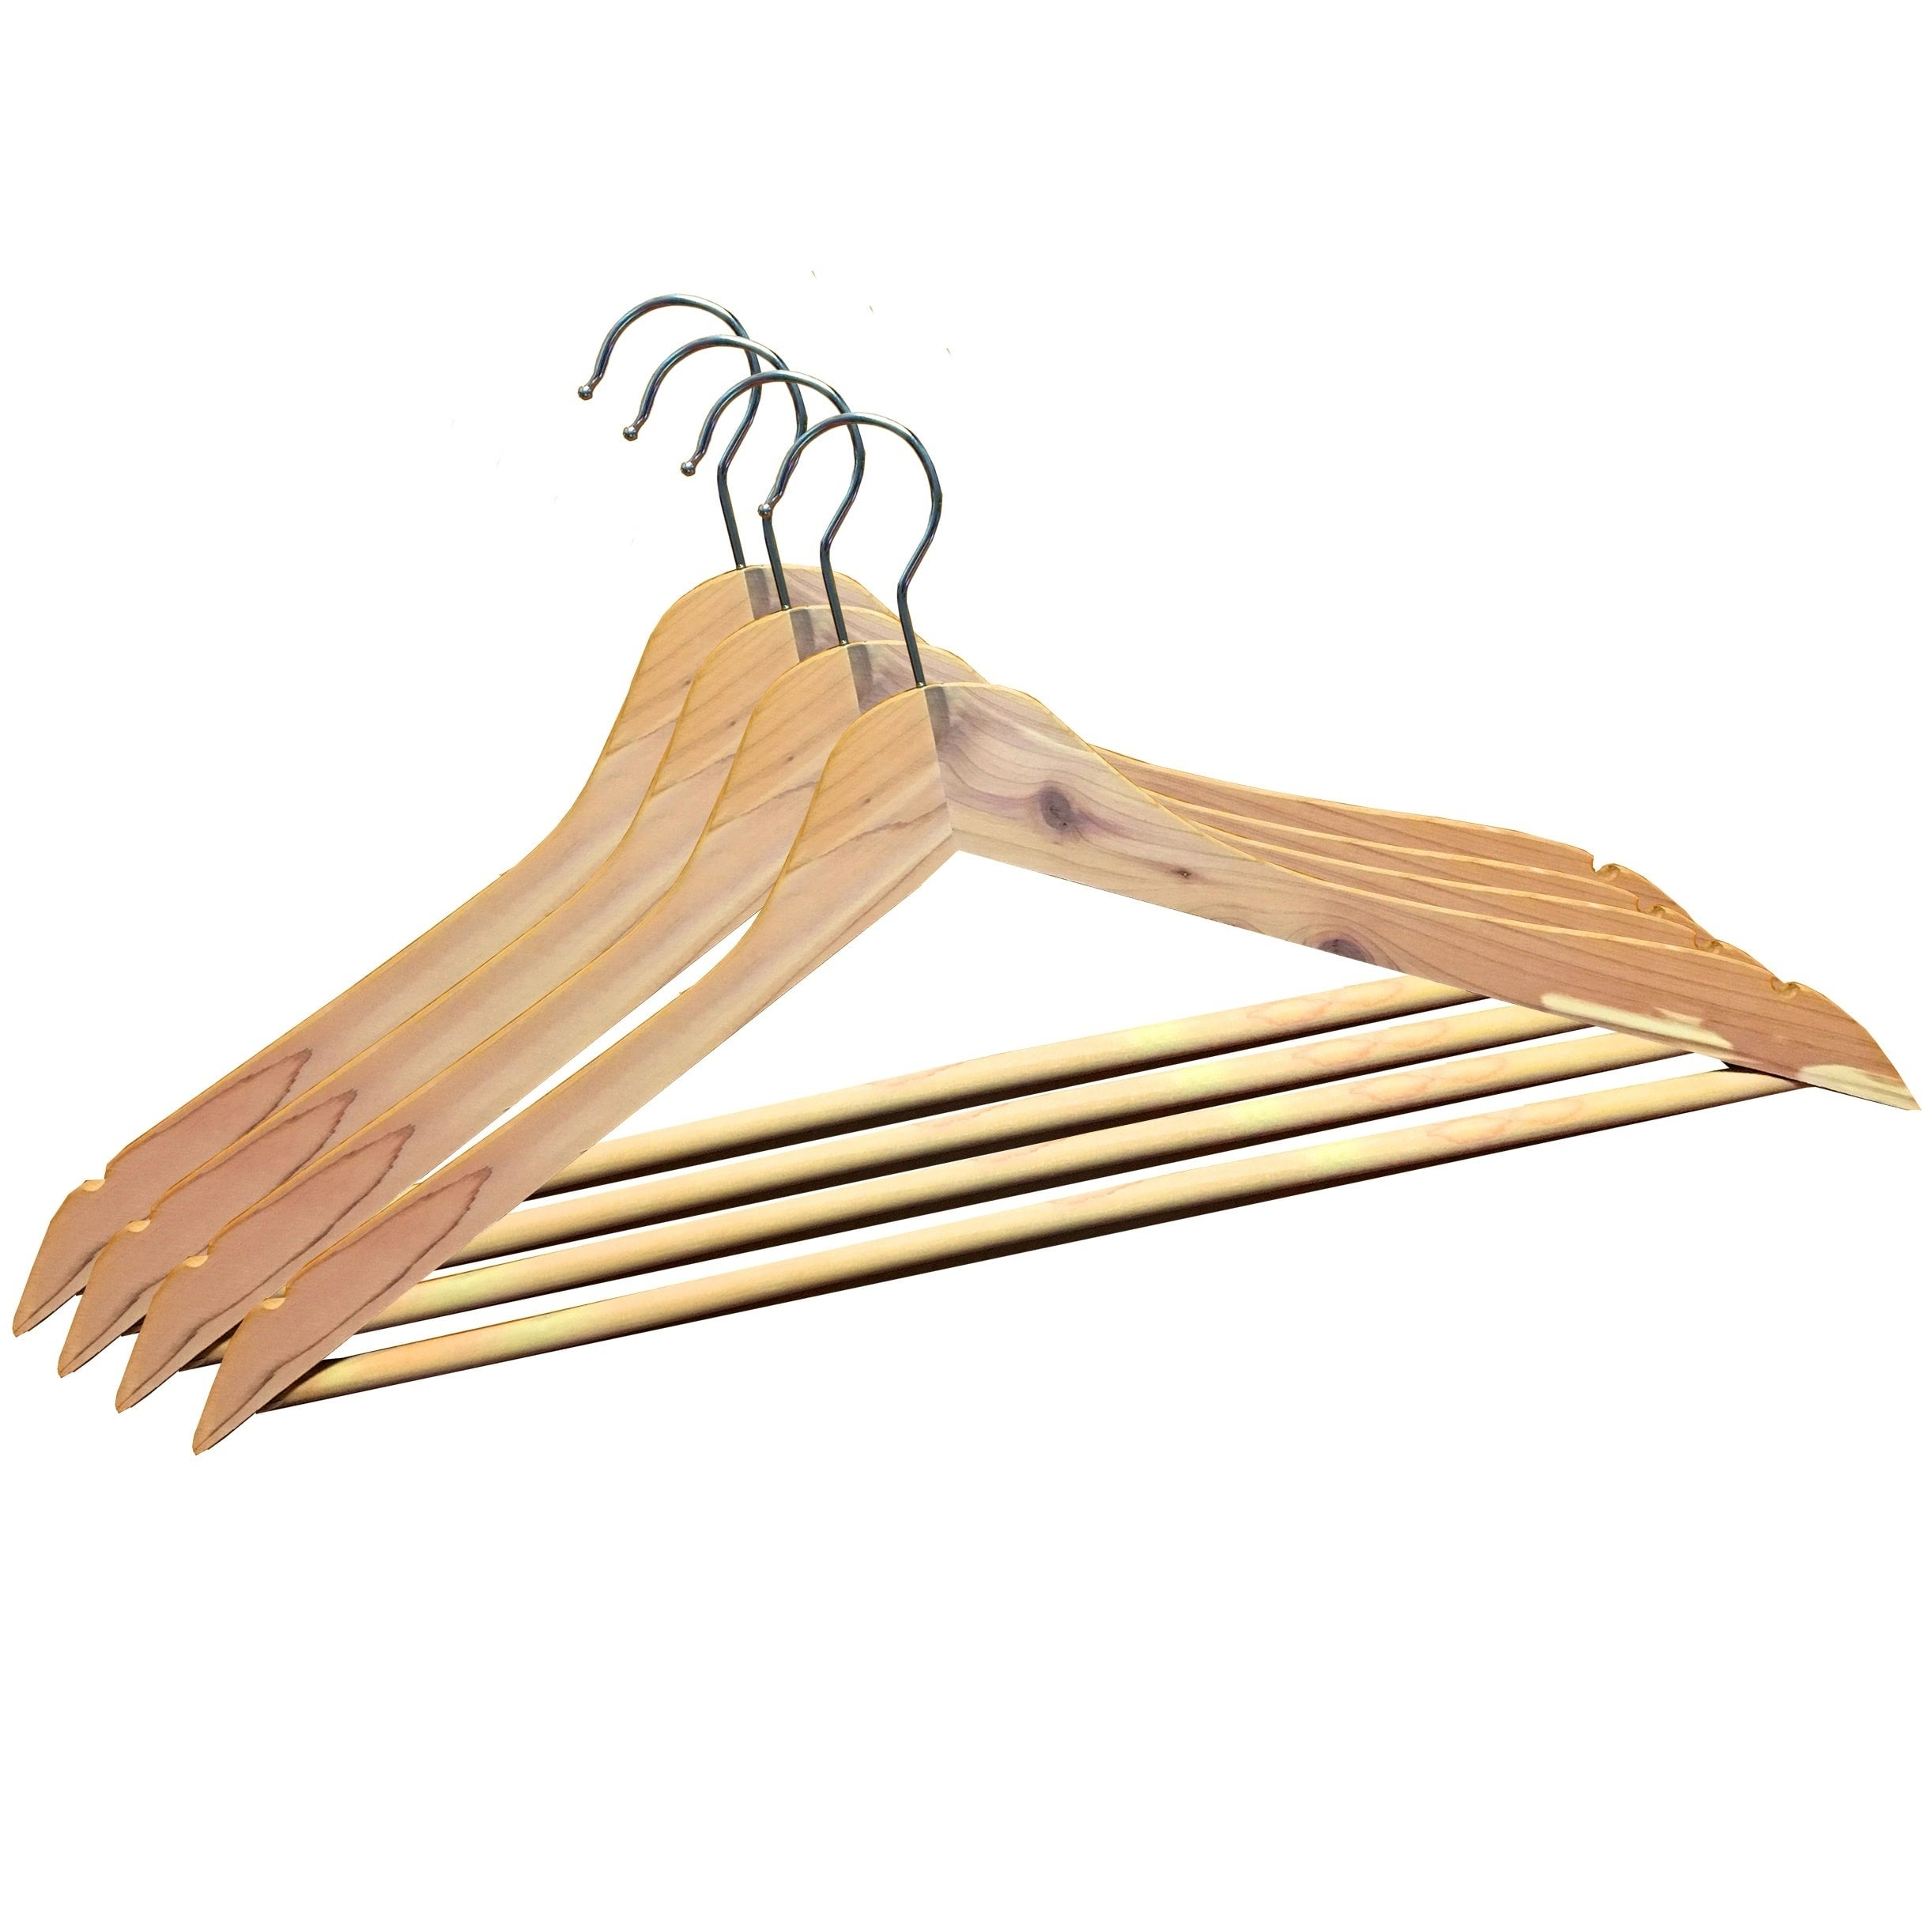 International Innovations Cedar Suit Hangers with Solid P...